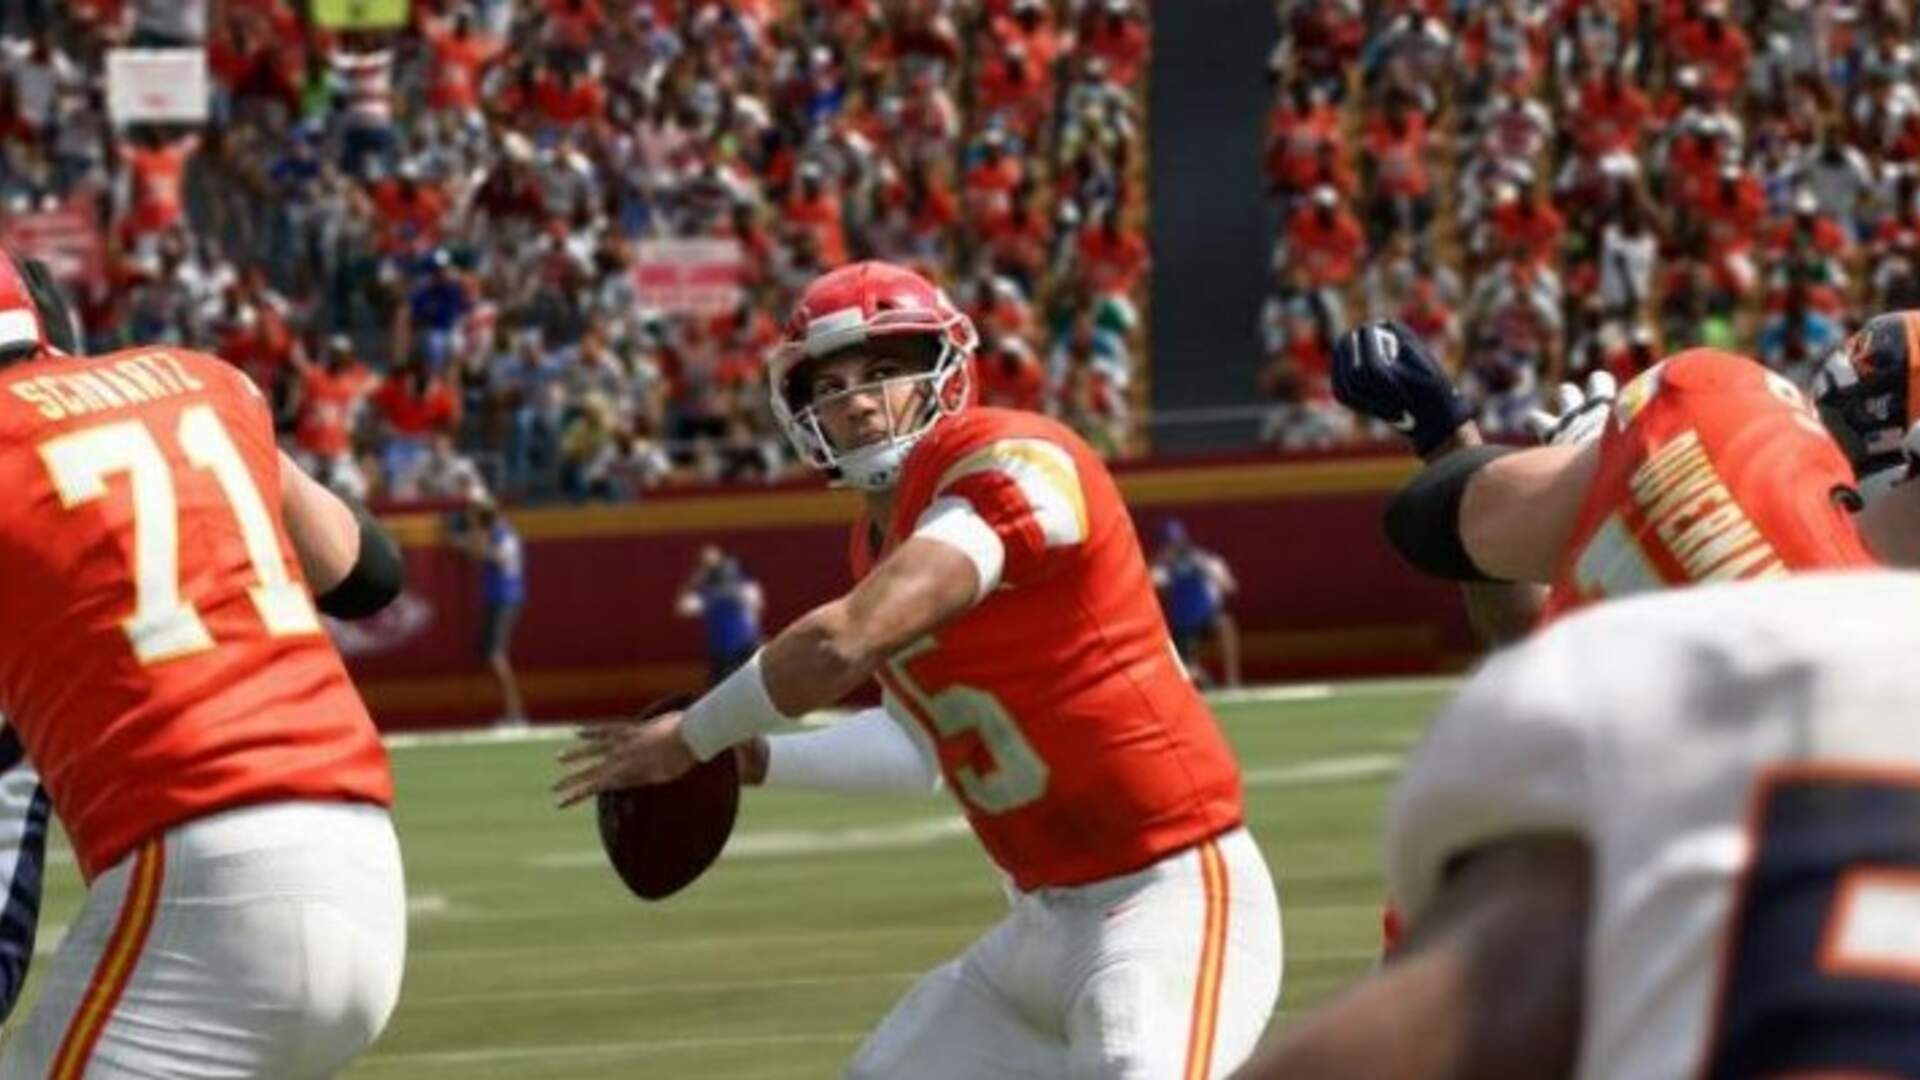 Madden 20 Rookie Ratings - All the Best Madden 20 Rookies